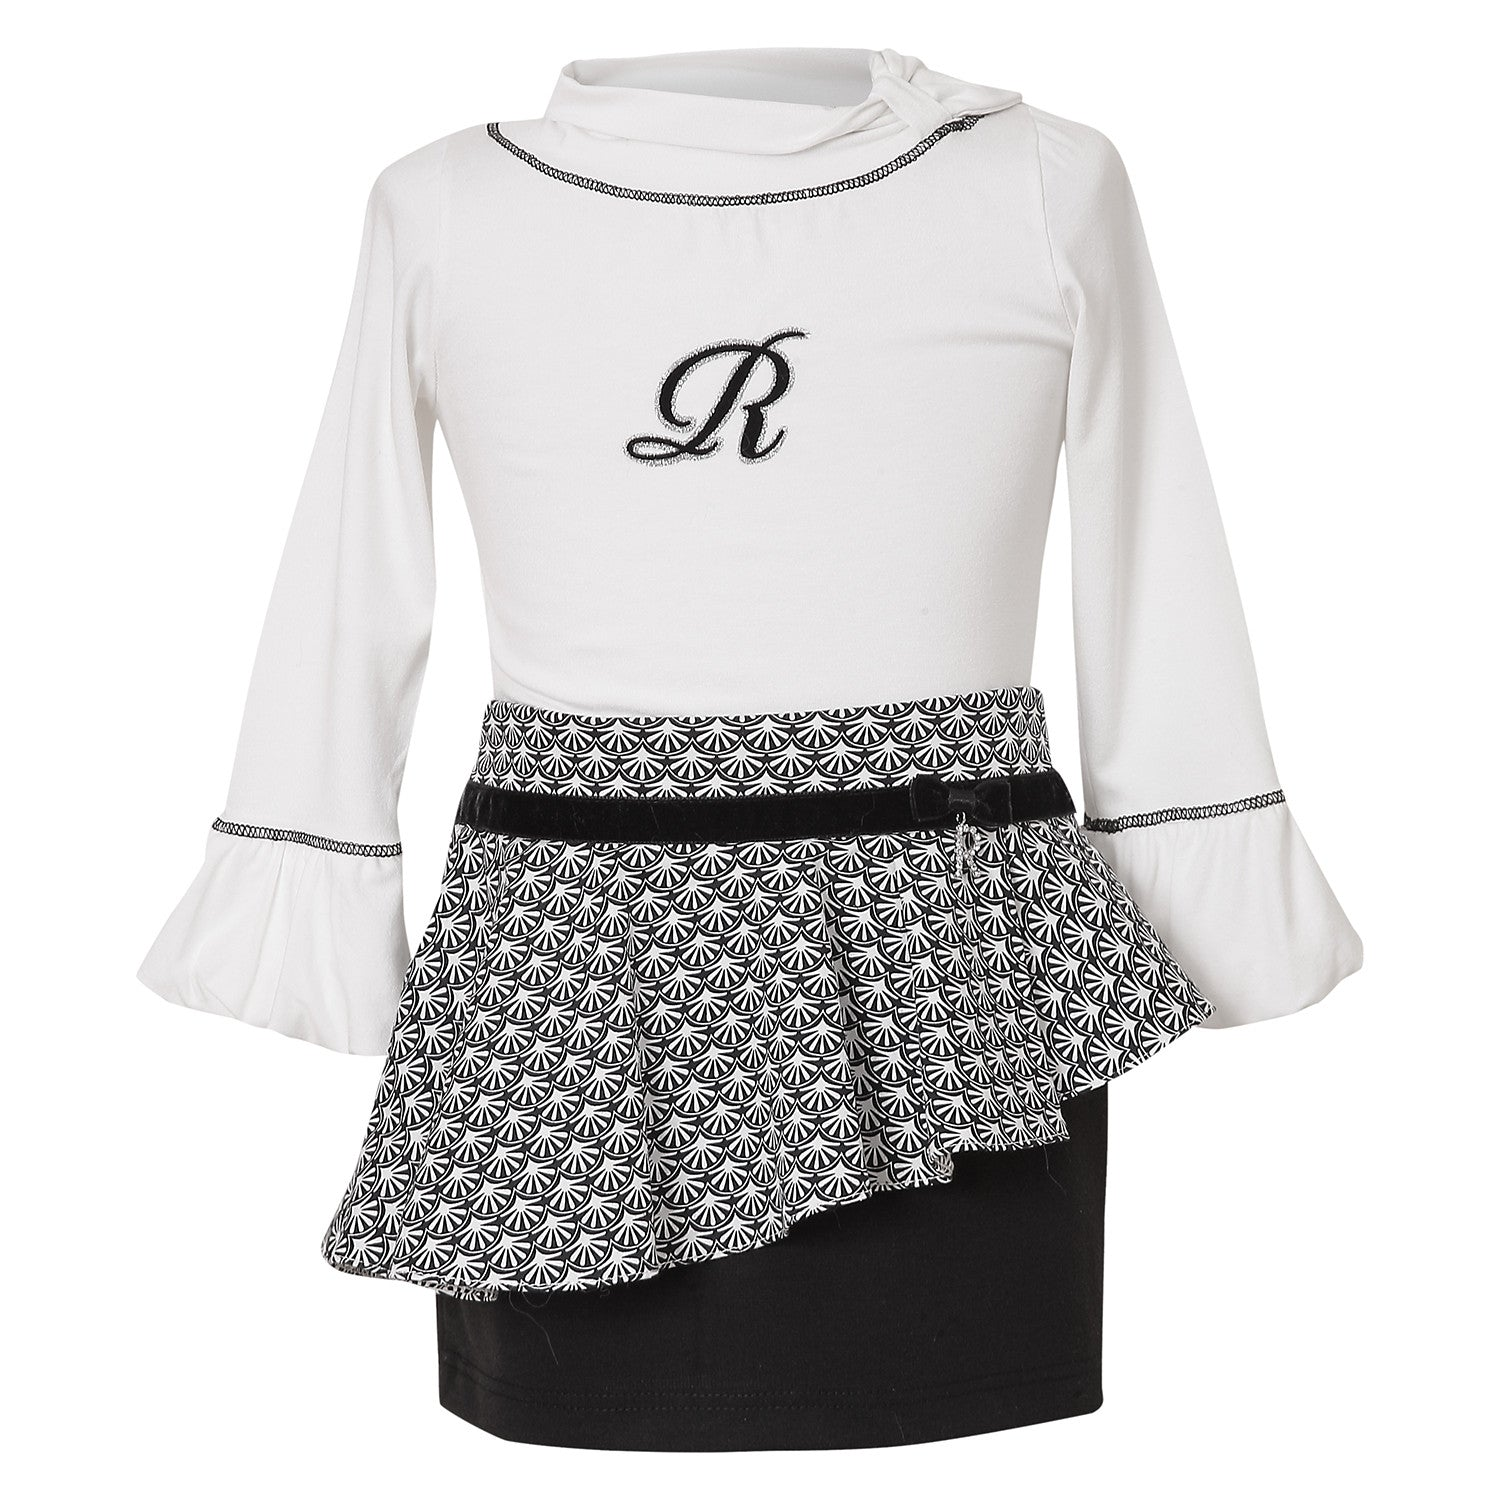 Ruffle Sleeve Blouse and skirt set for girls